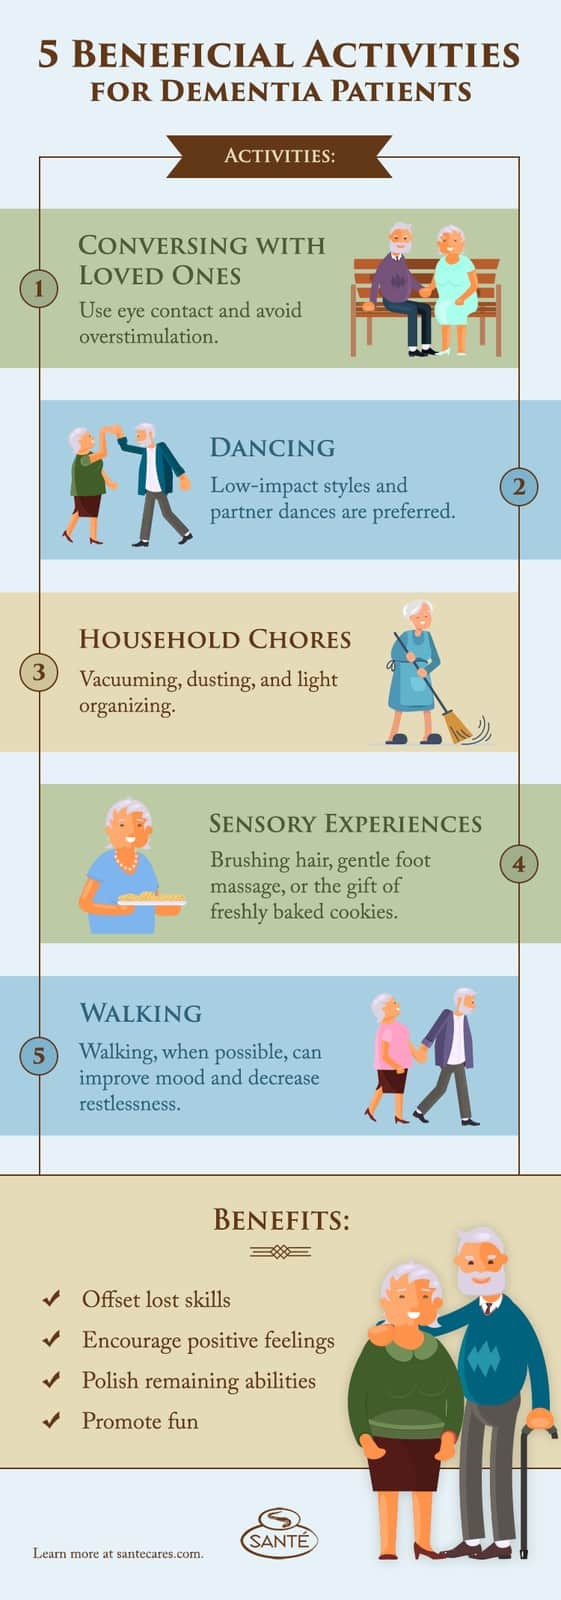 activities for dementia